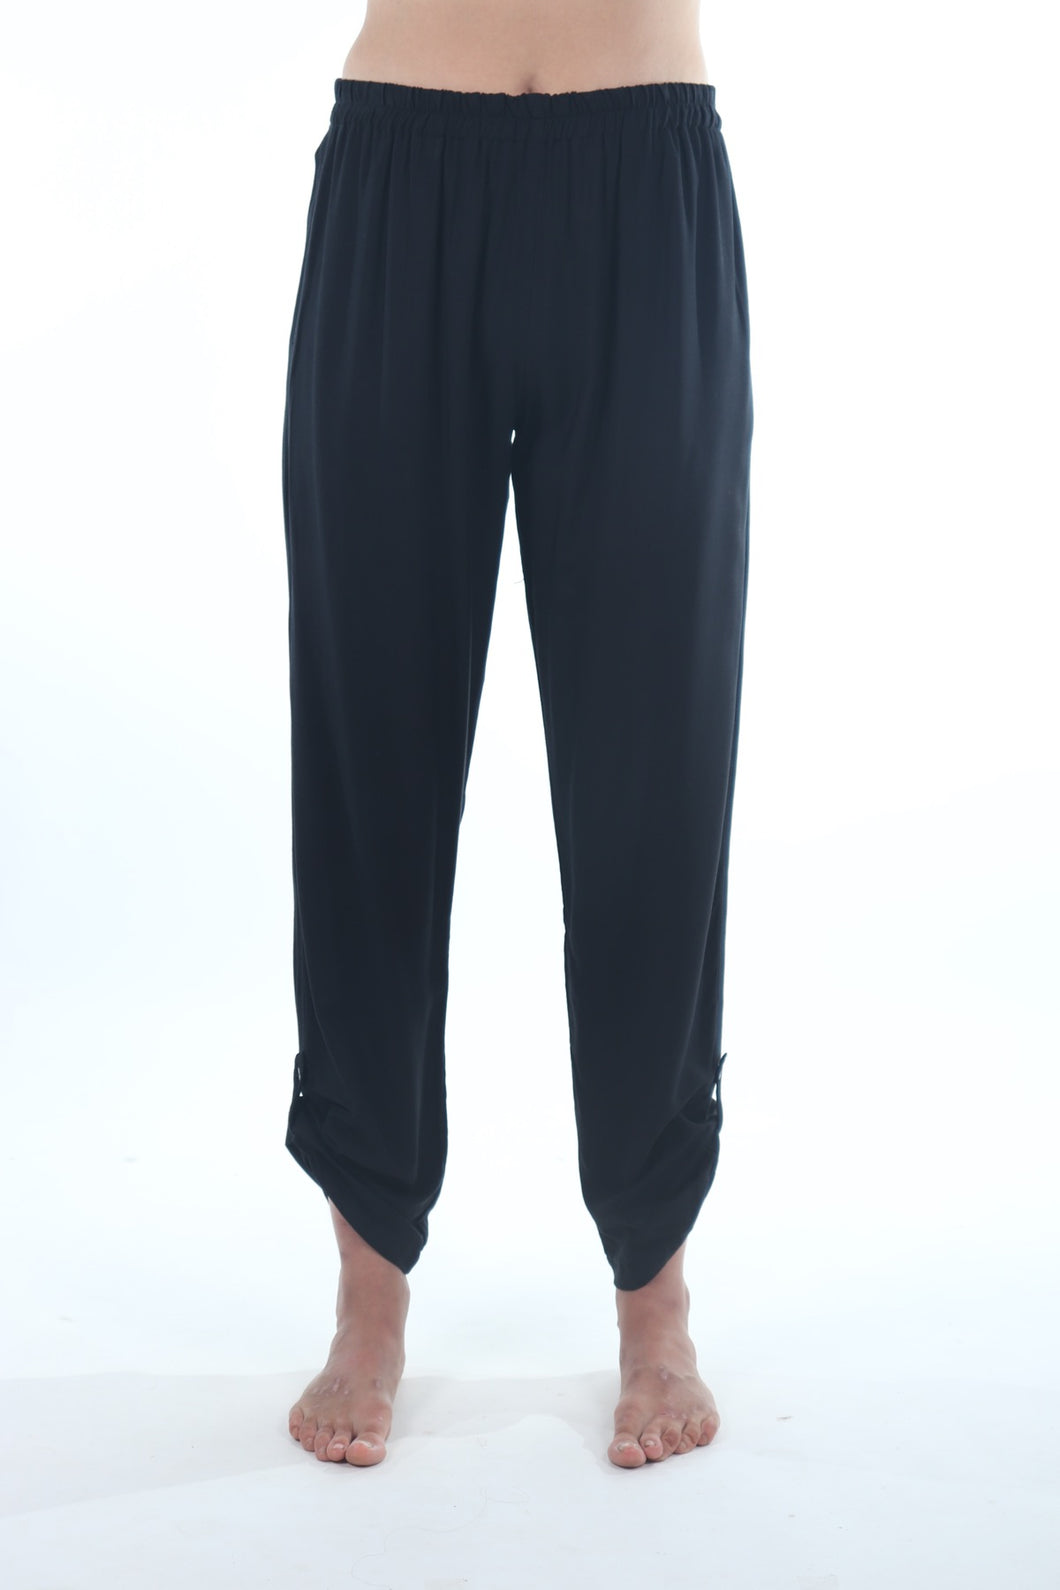 Indi Pants/Black